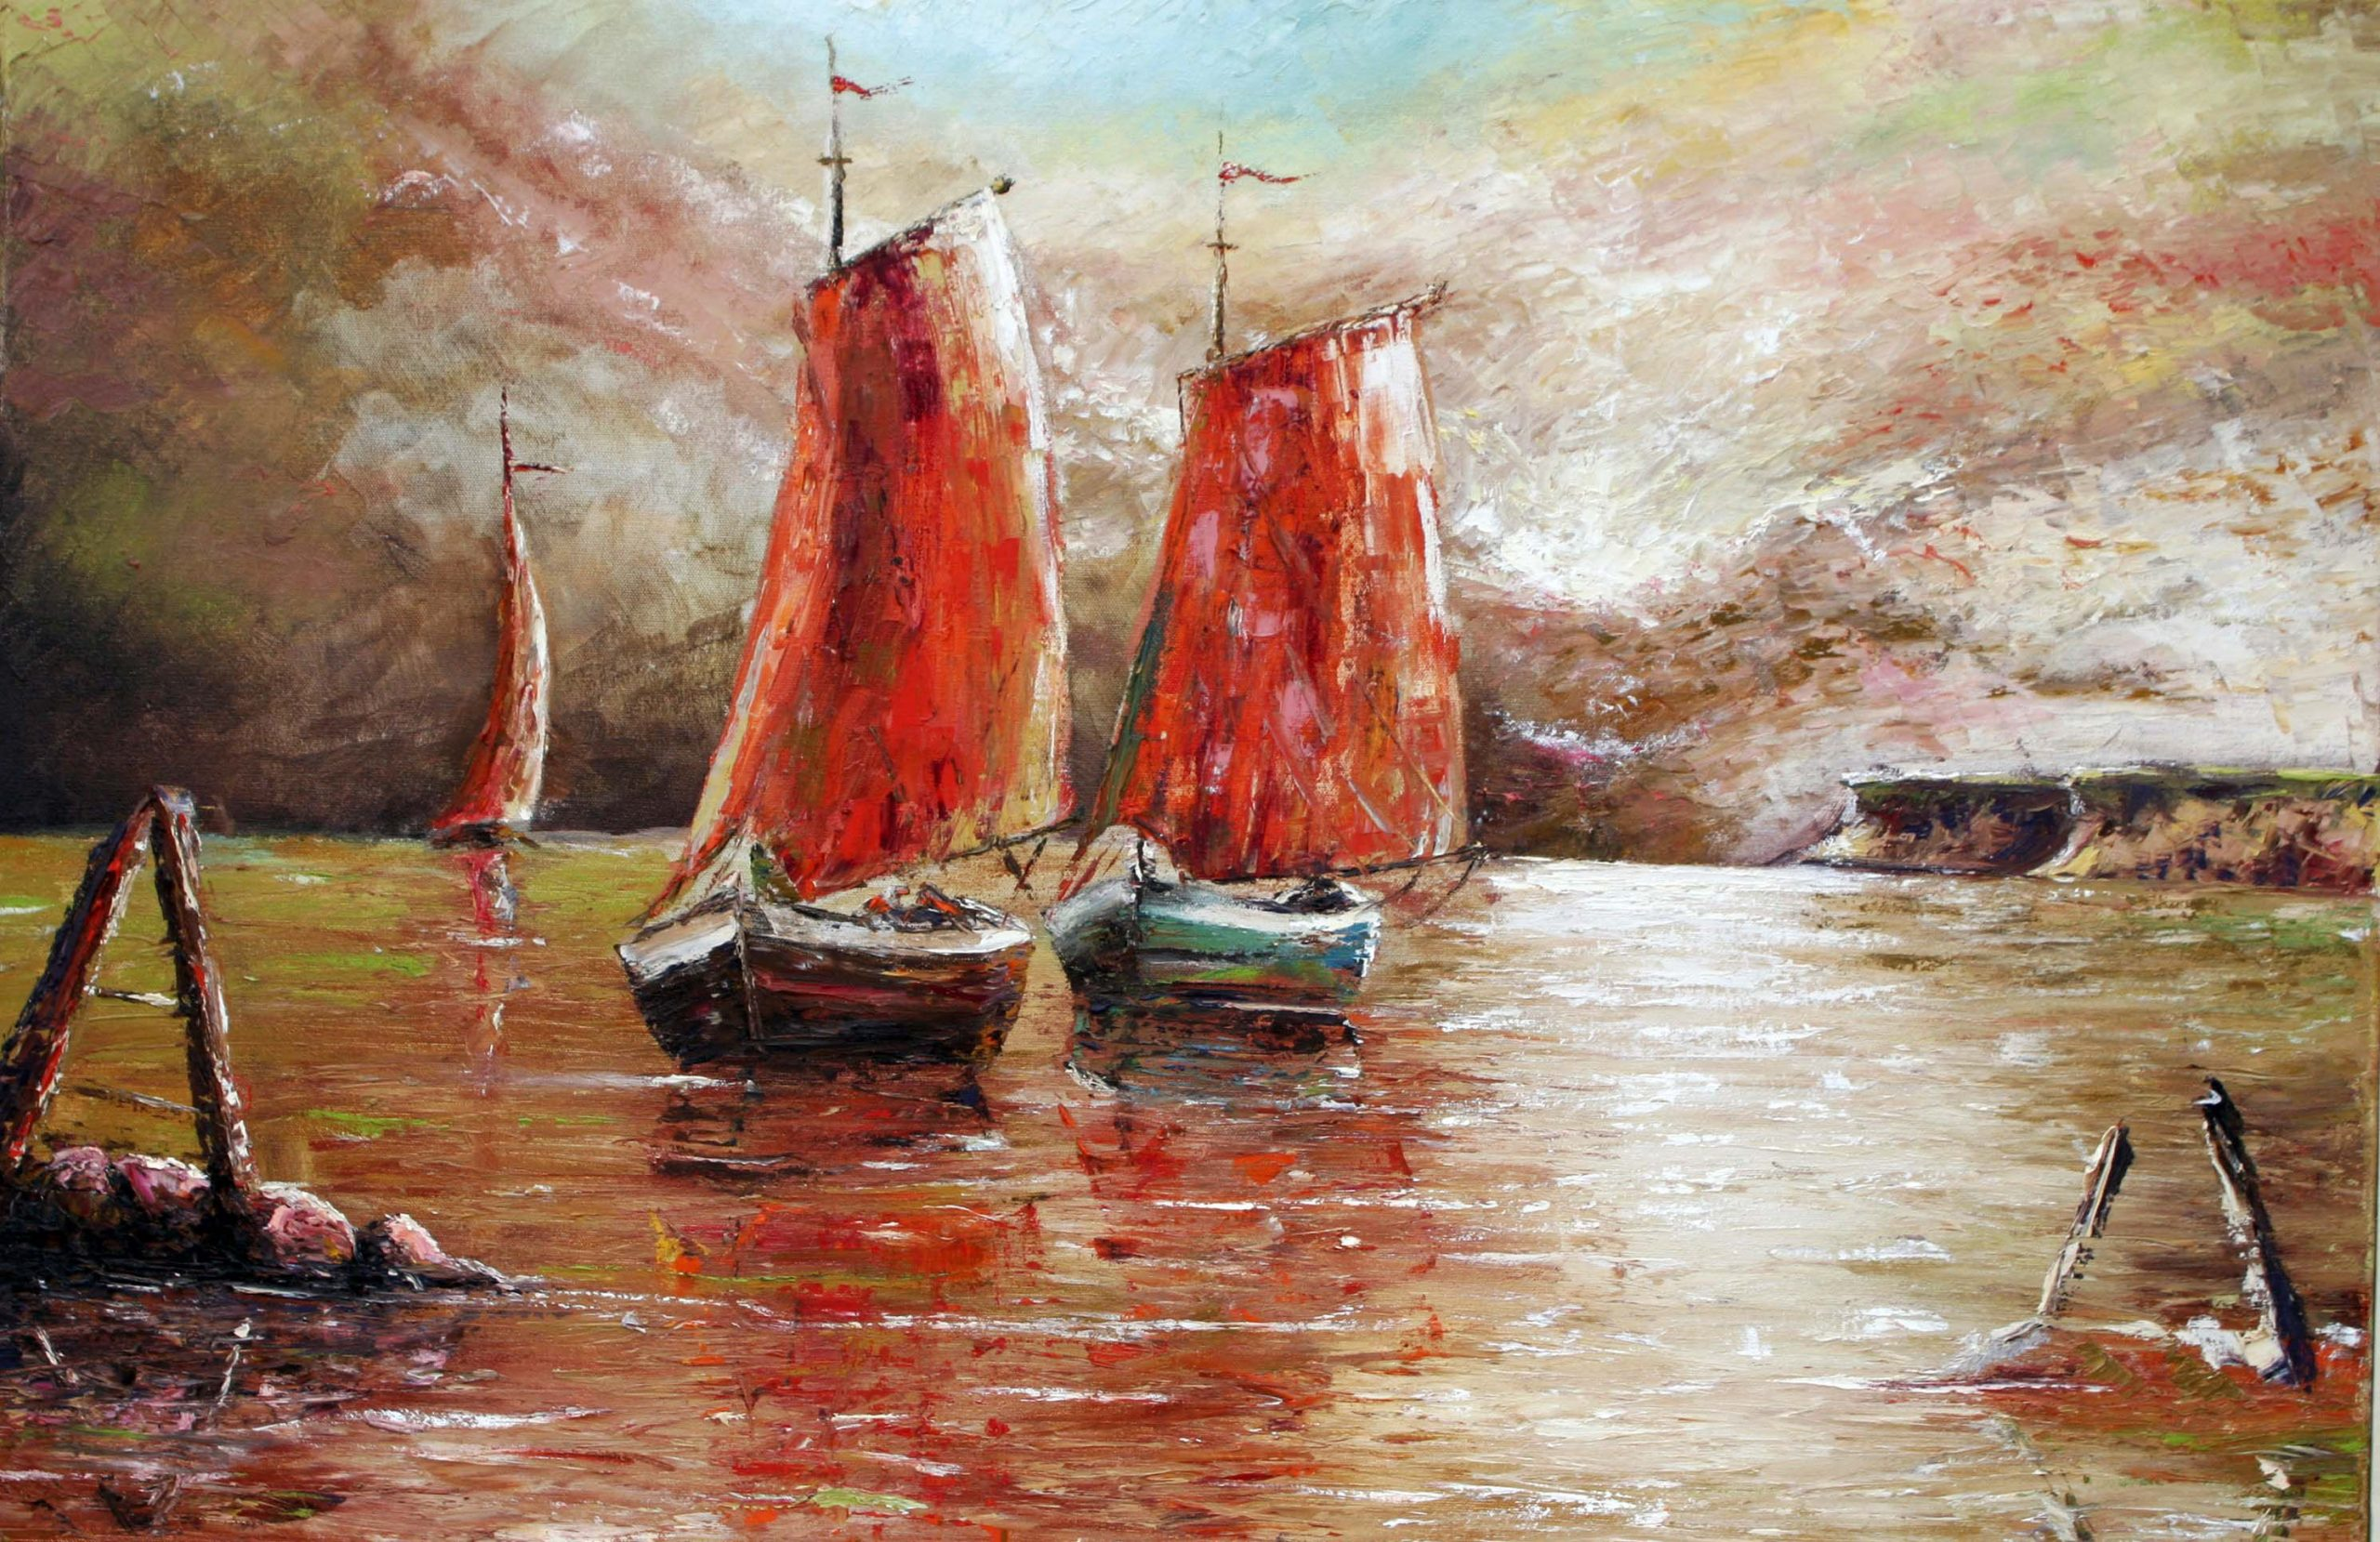 Painting In The Style Of The Impressionists